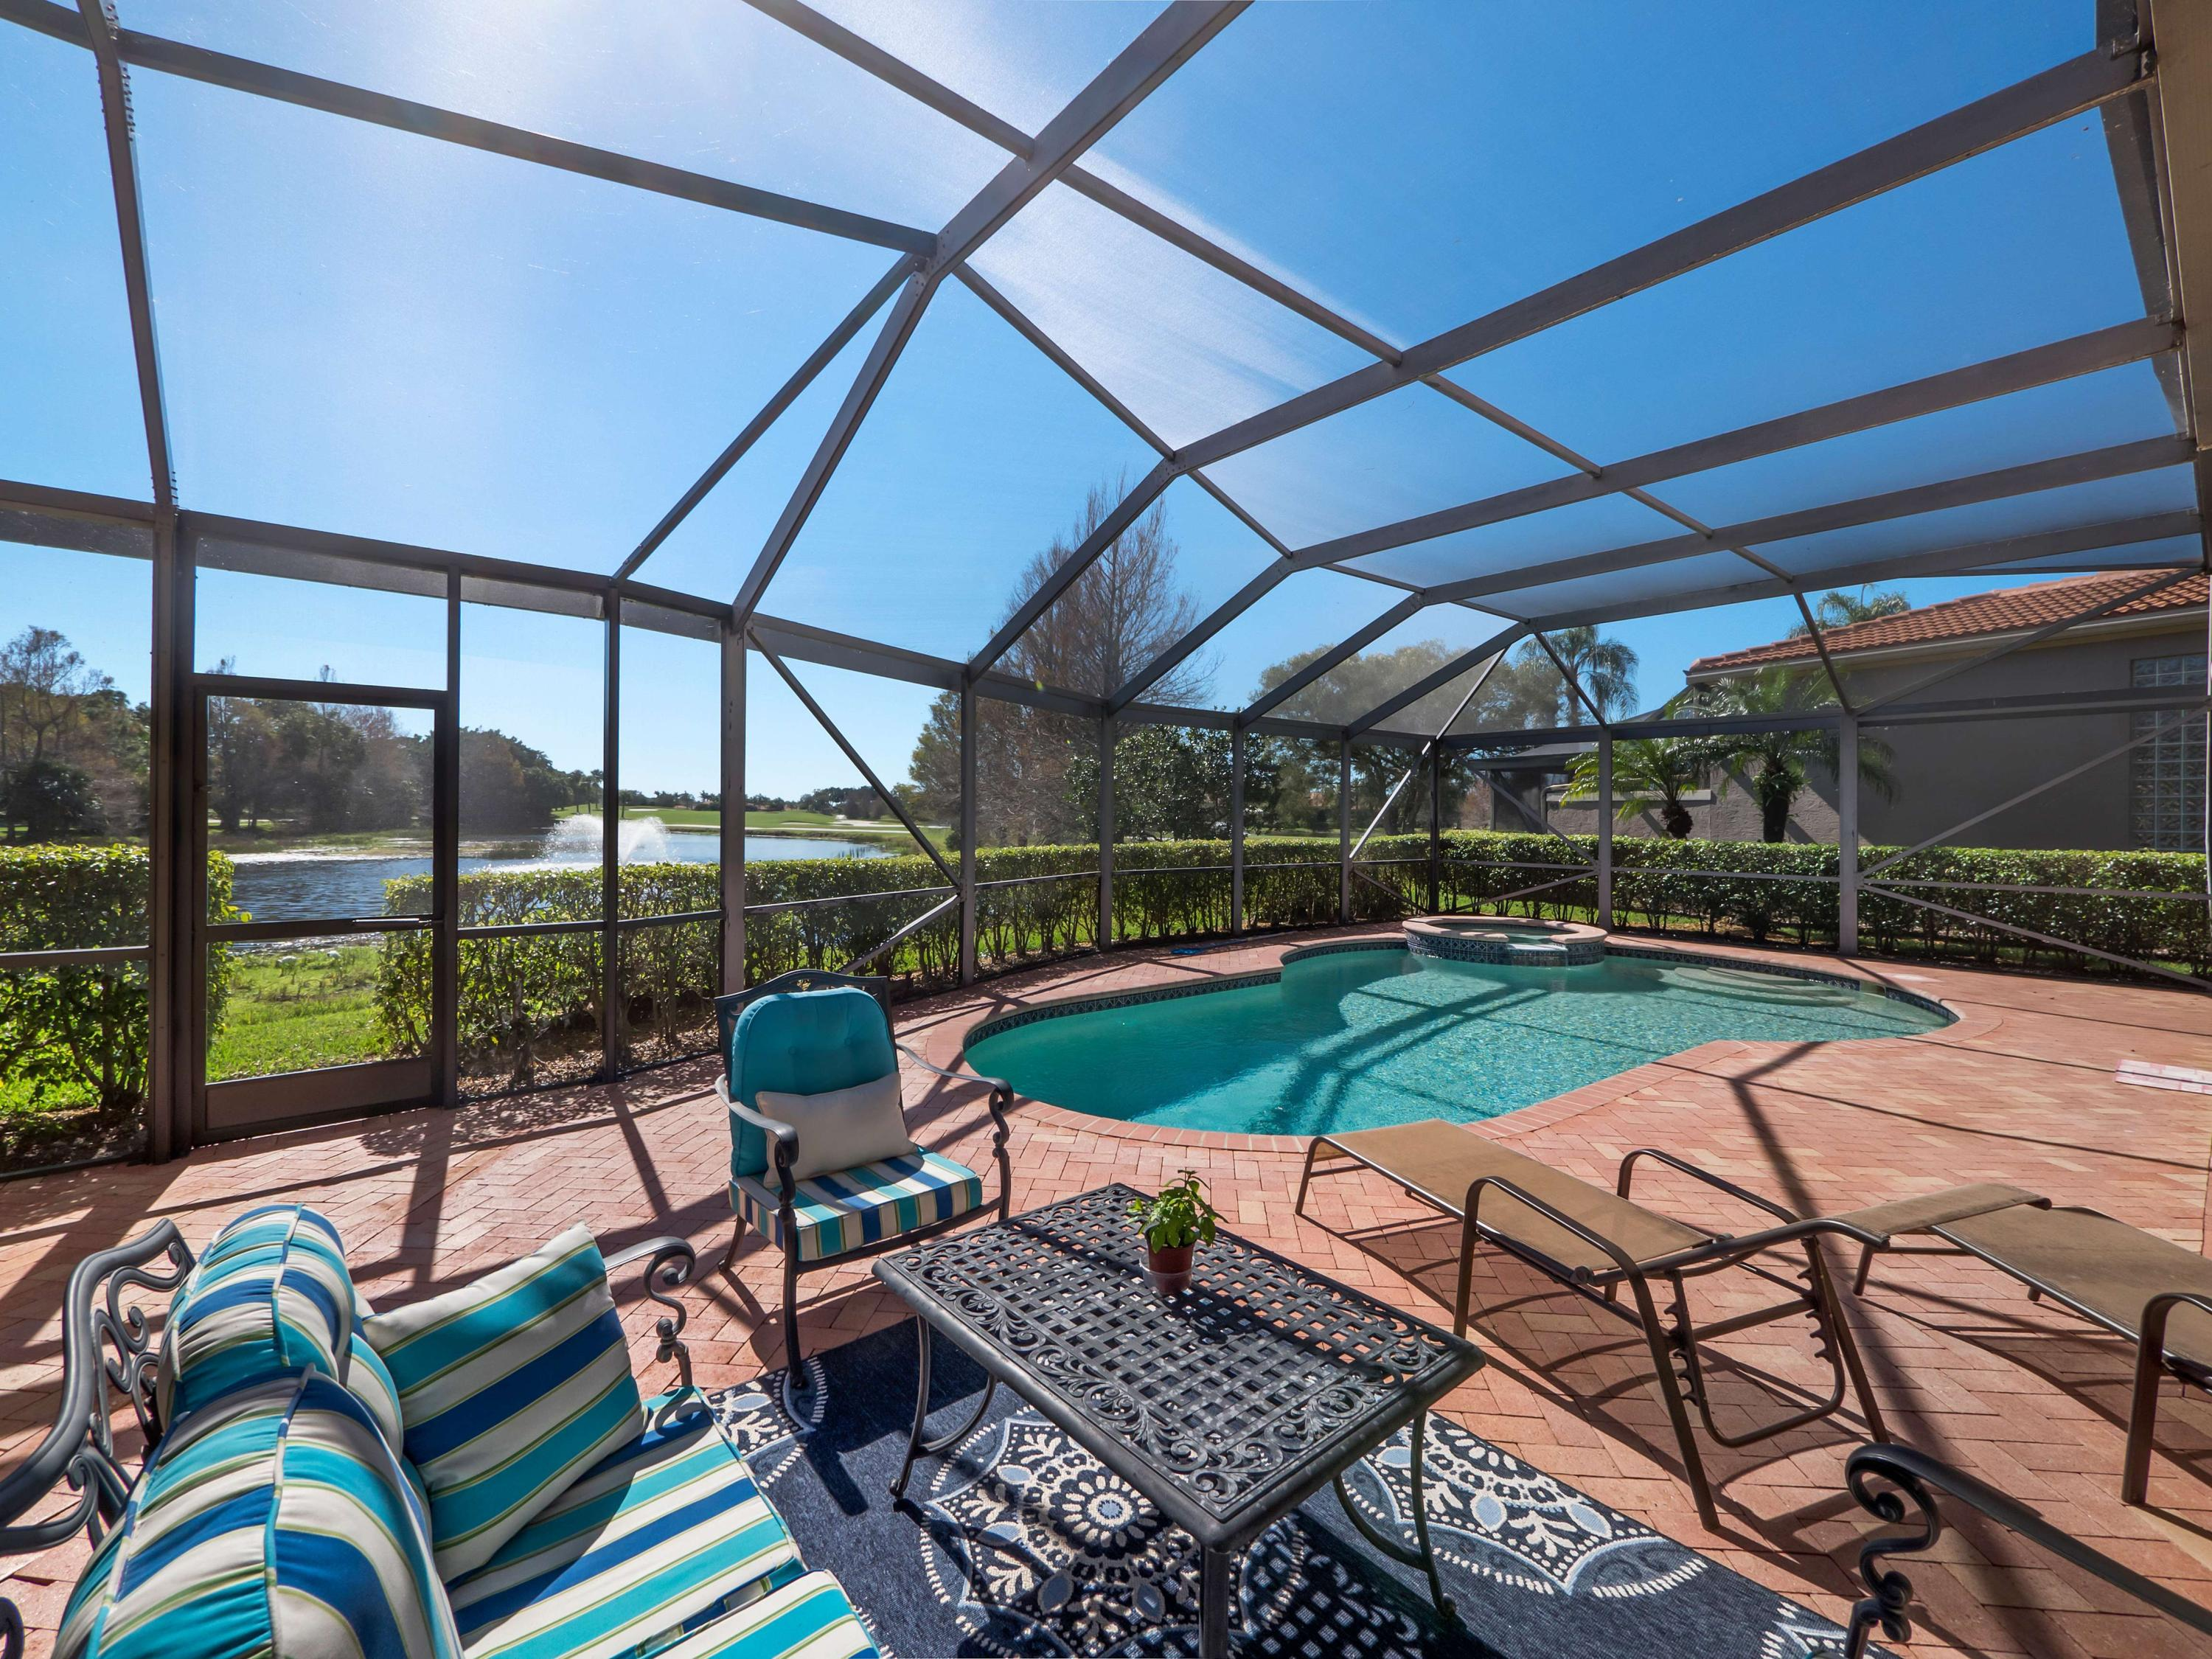 10689 Waterford Place, West Palm Beach, Florida 33412, 3 Bedrooms Bedrooms, ,3 BathroomsBathrooms,A,Single family,Waterford,RX-10407075